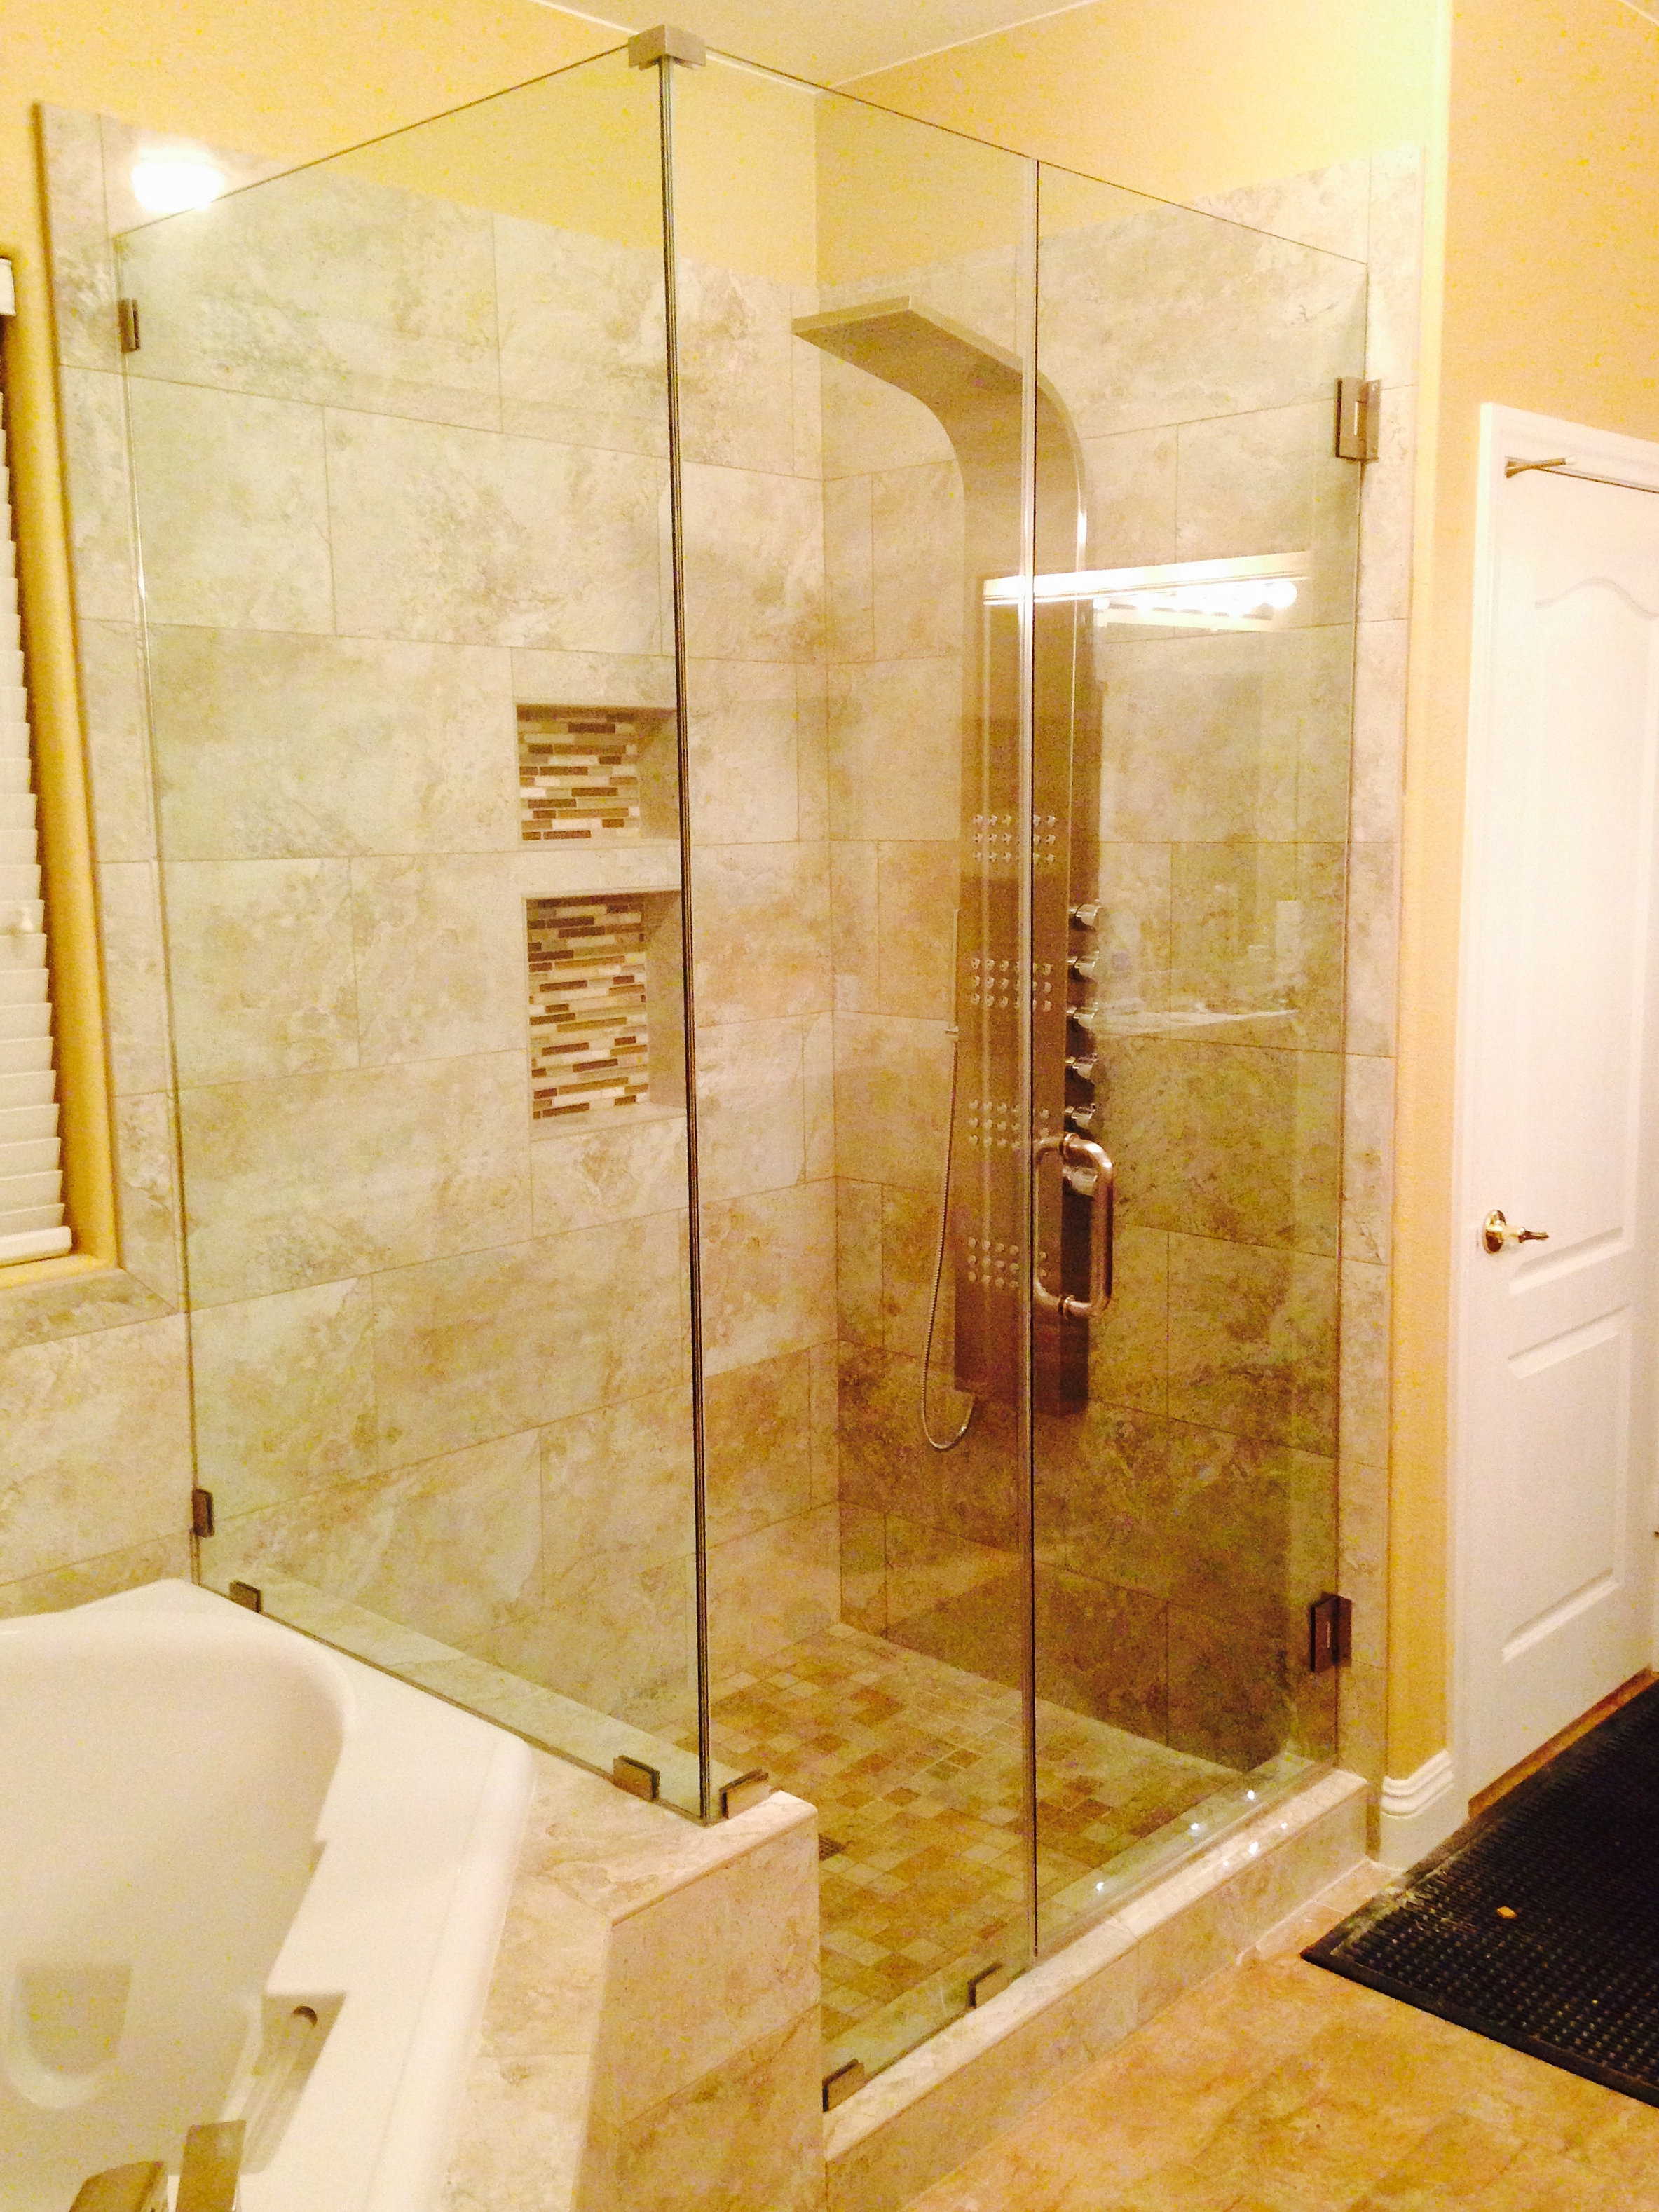 glass repair las vegas patio door commercial replacement board up new shower glass las vegas shower replacement bathroom remodel